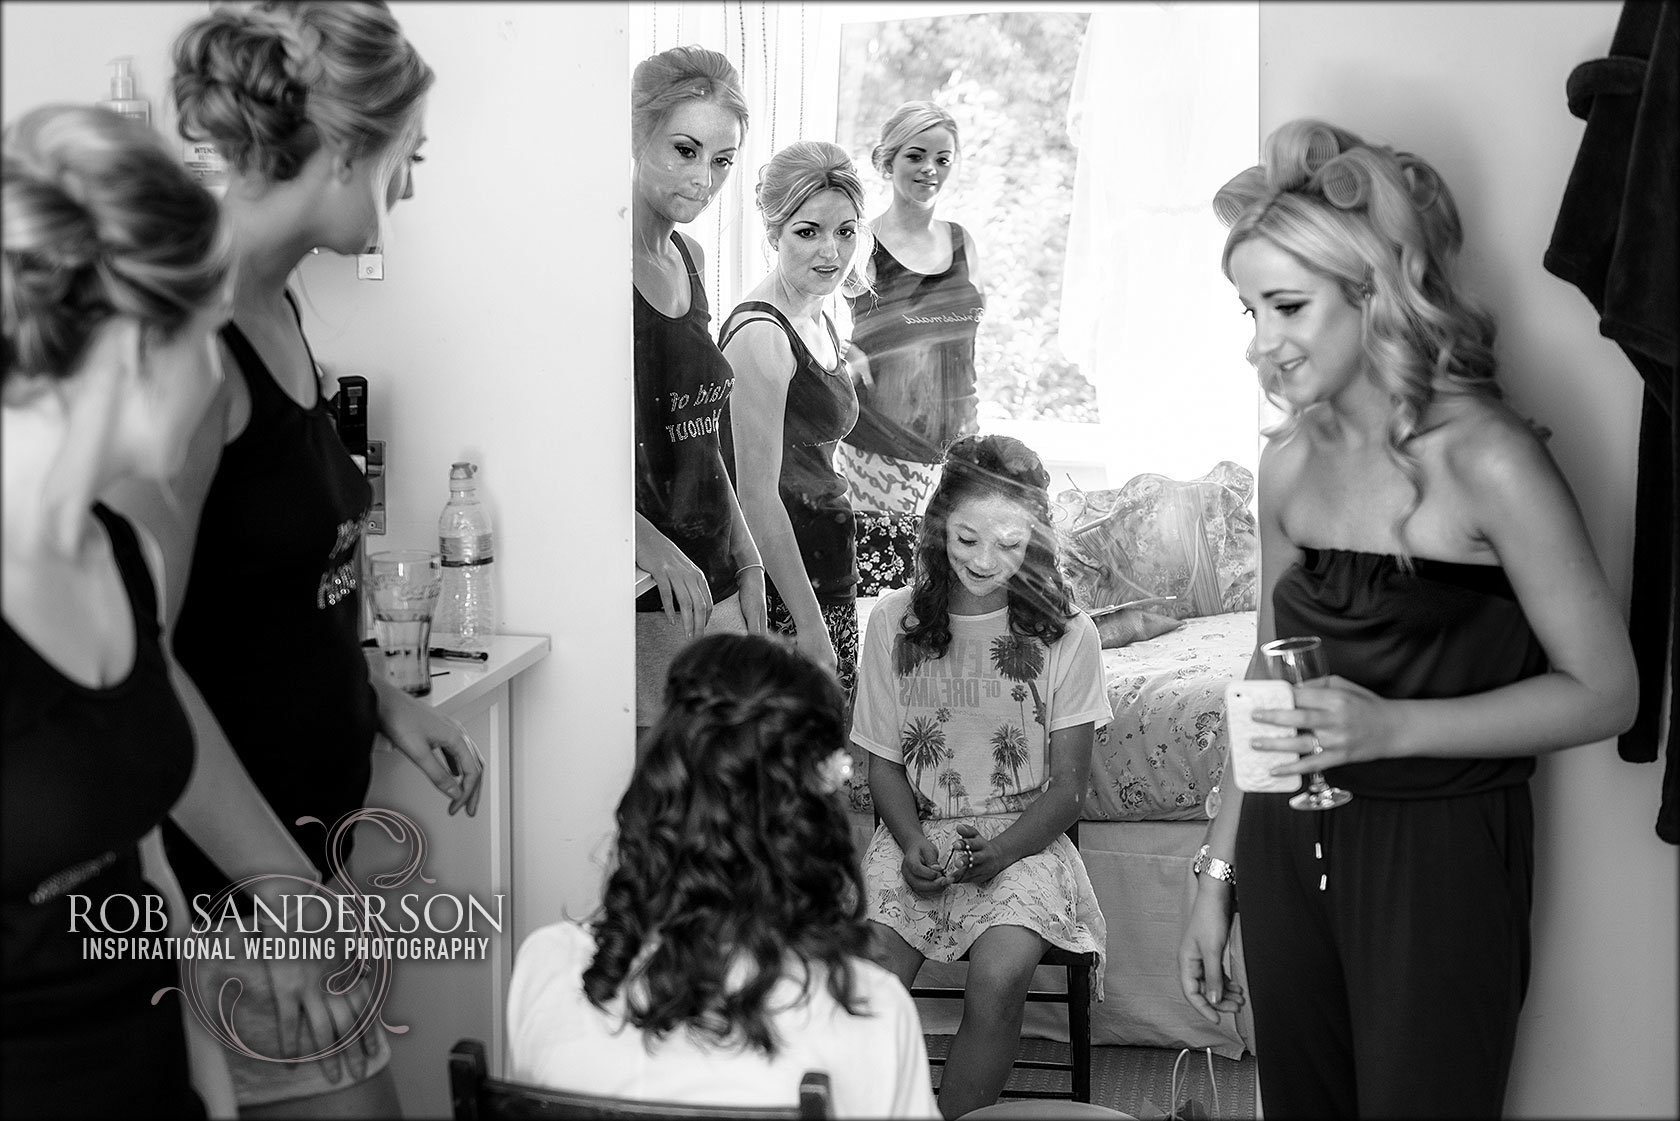 an intimate moment between bride and bridesmaids